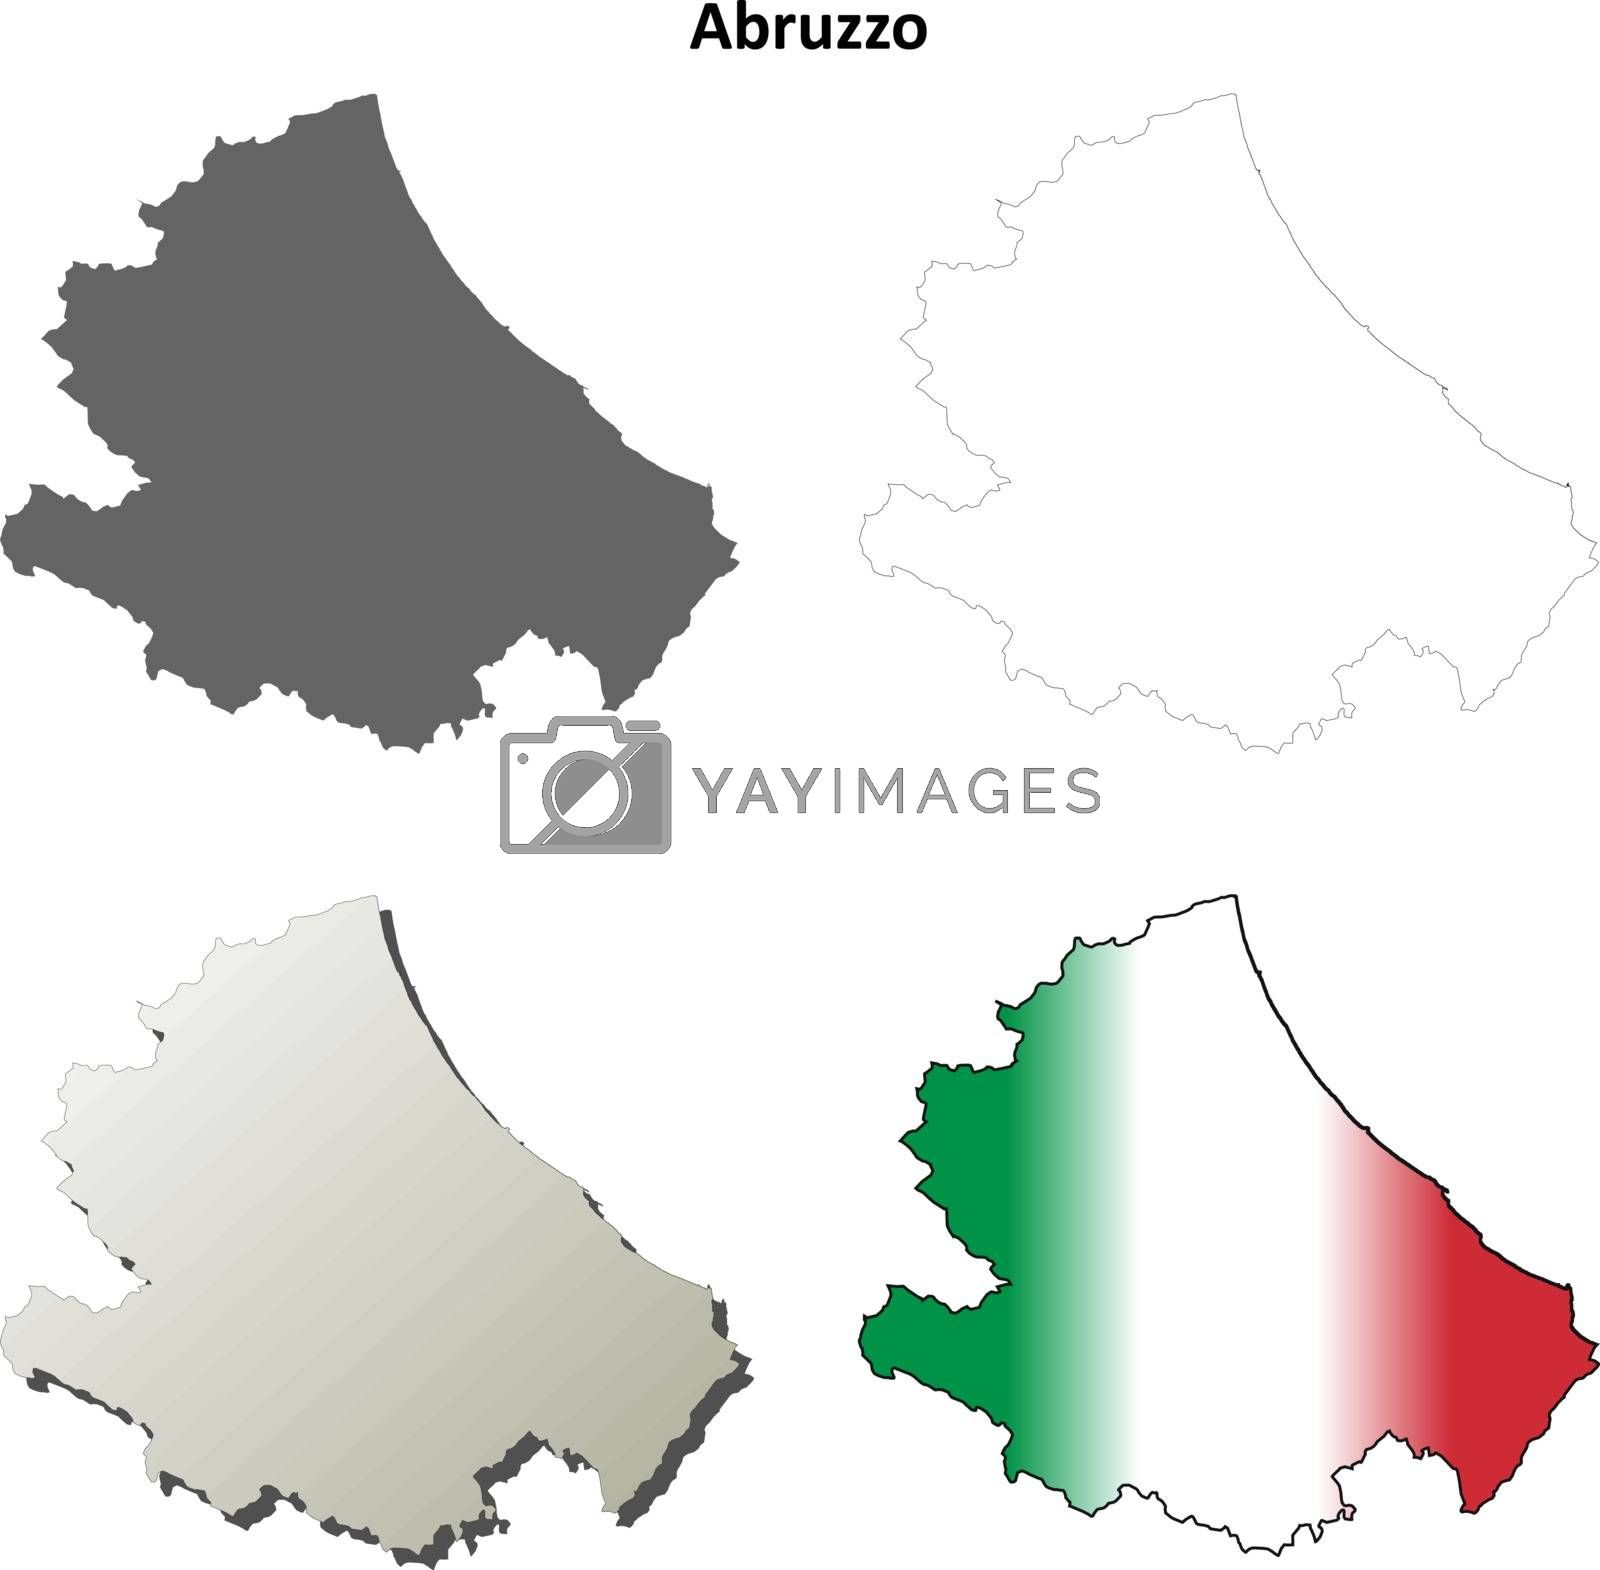 Picture of: Abruzzo Blank Detailed Outline Map Set Royalty Free Stock Image Stock Photos Royalty Free Images Vectors Footage Yayimages